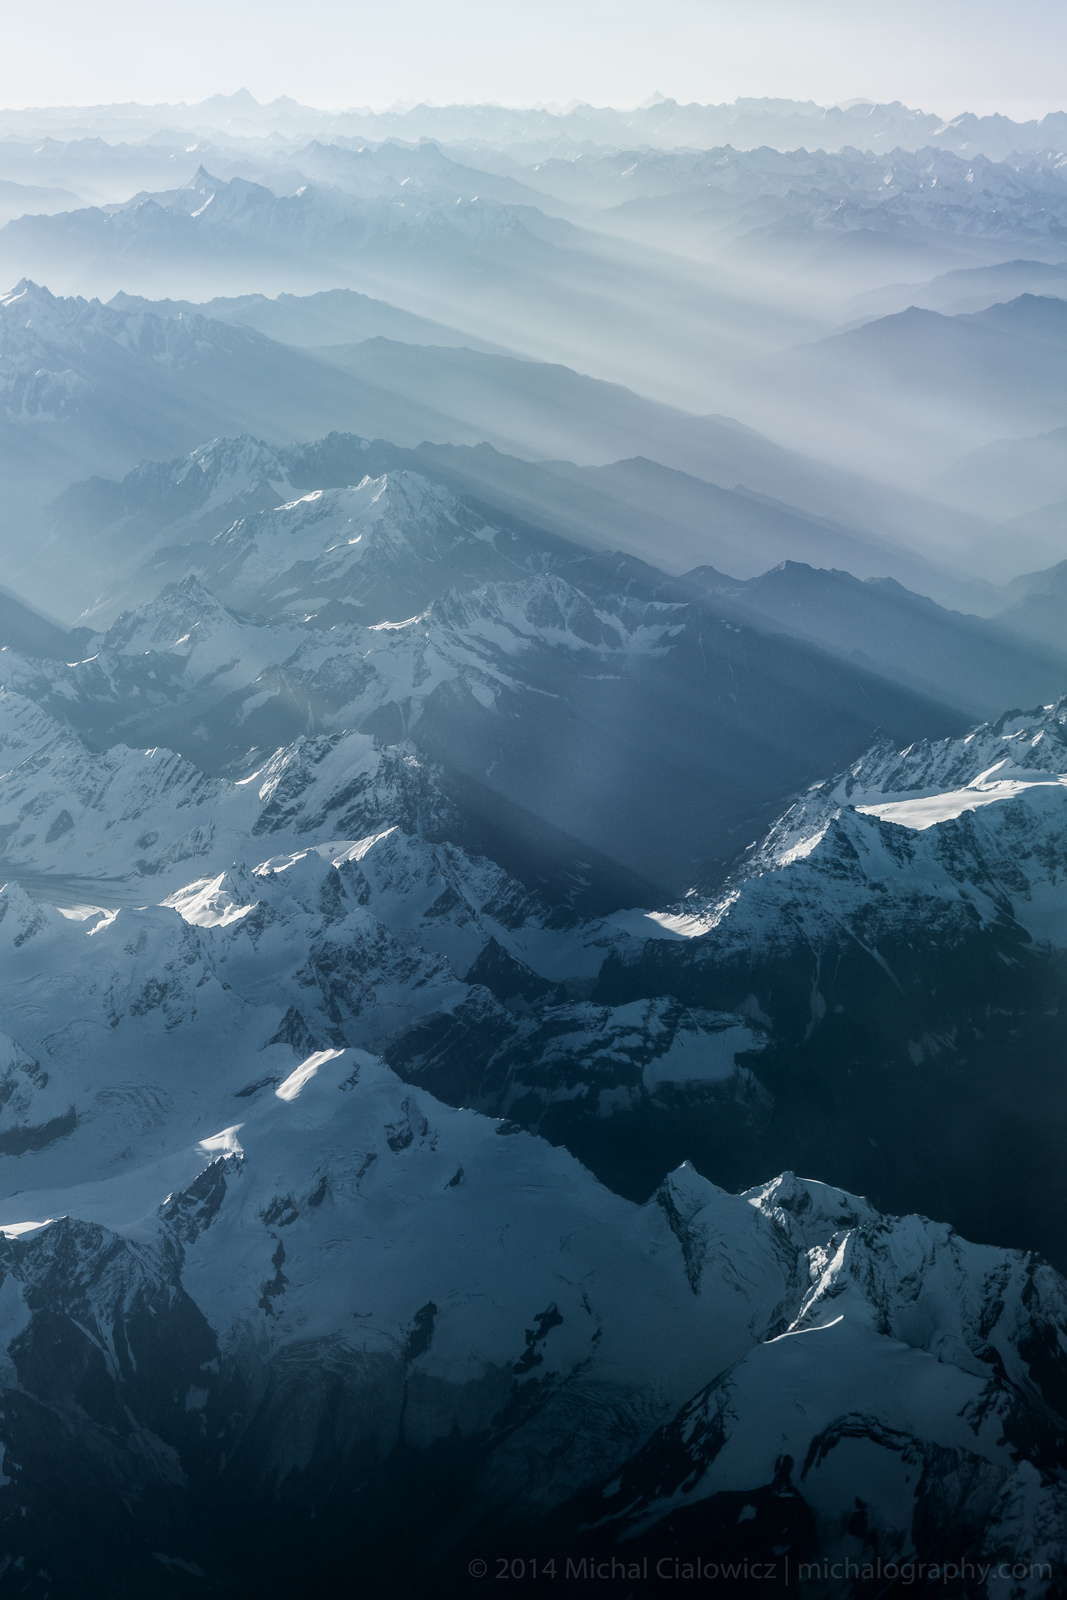 The Himalayas (Sony A6000 + 16-70mm f/4 OSS)